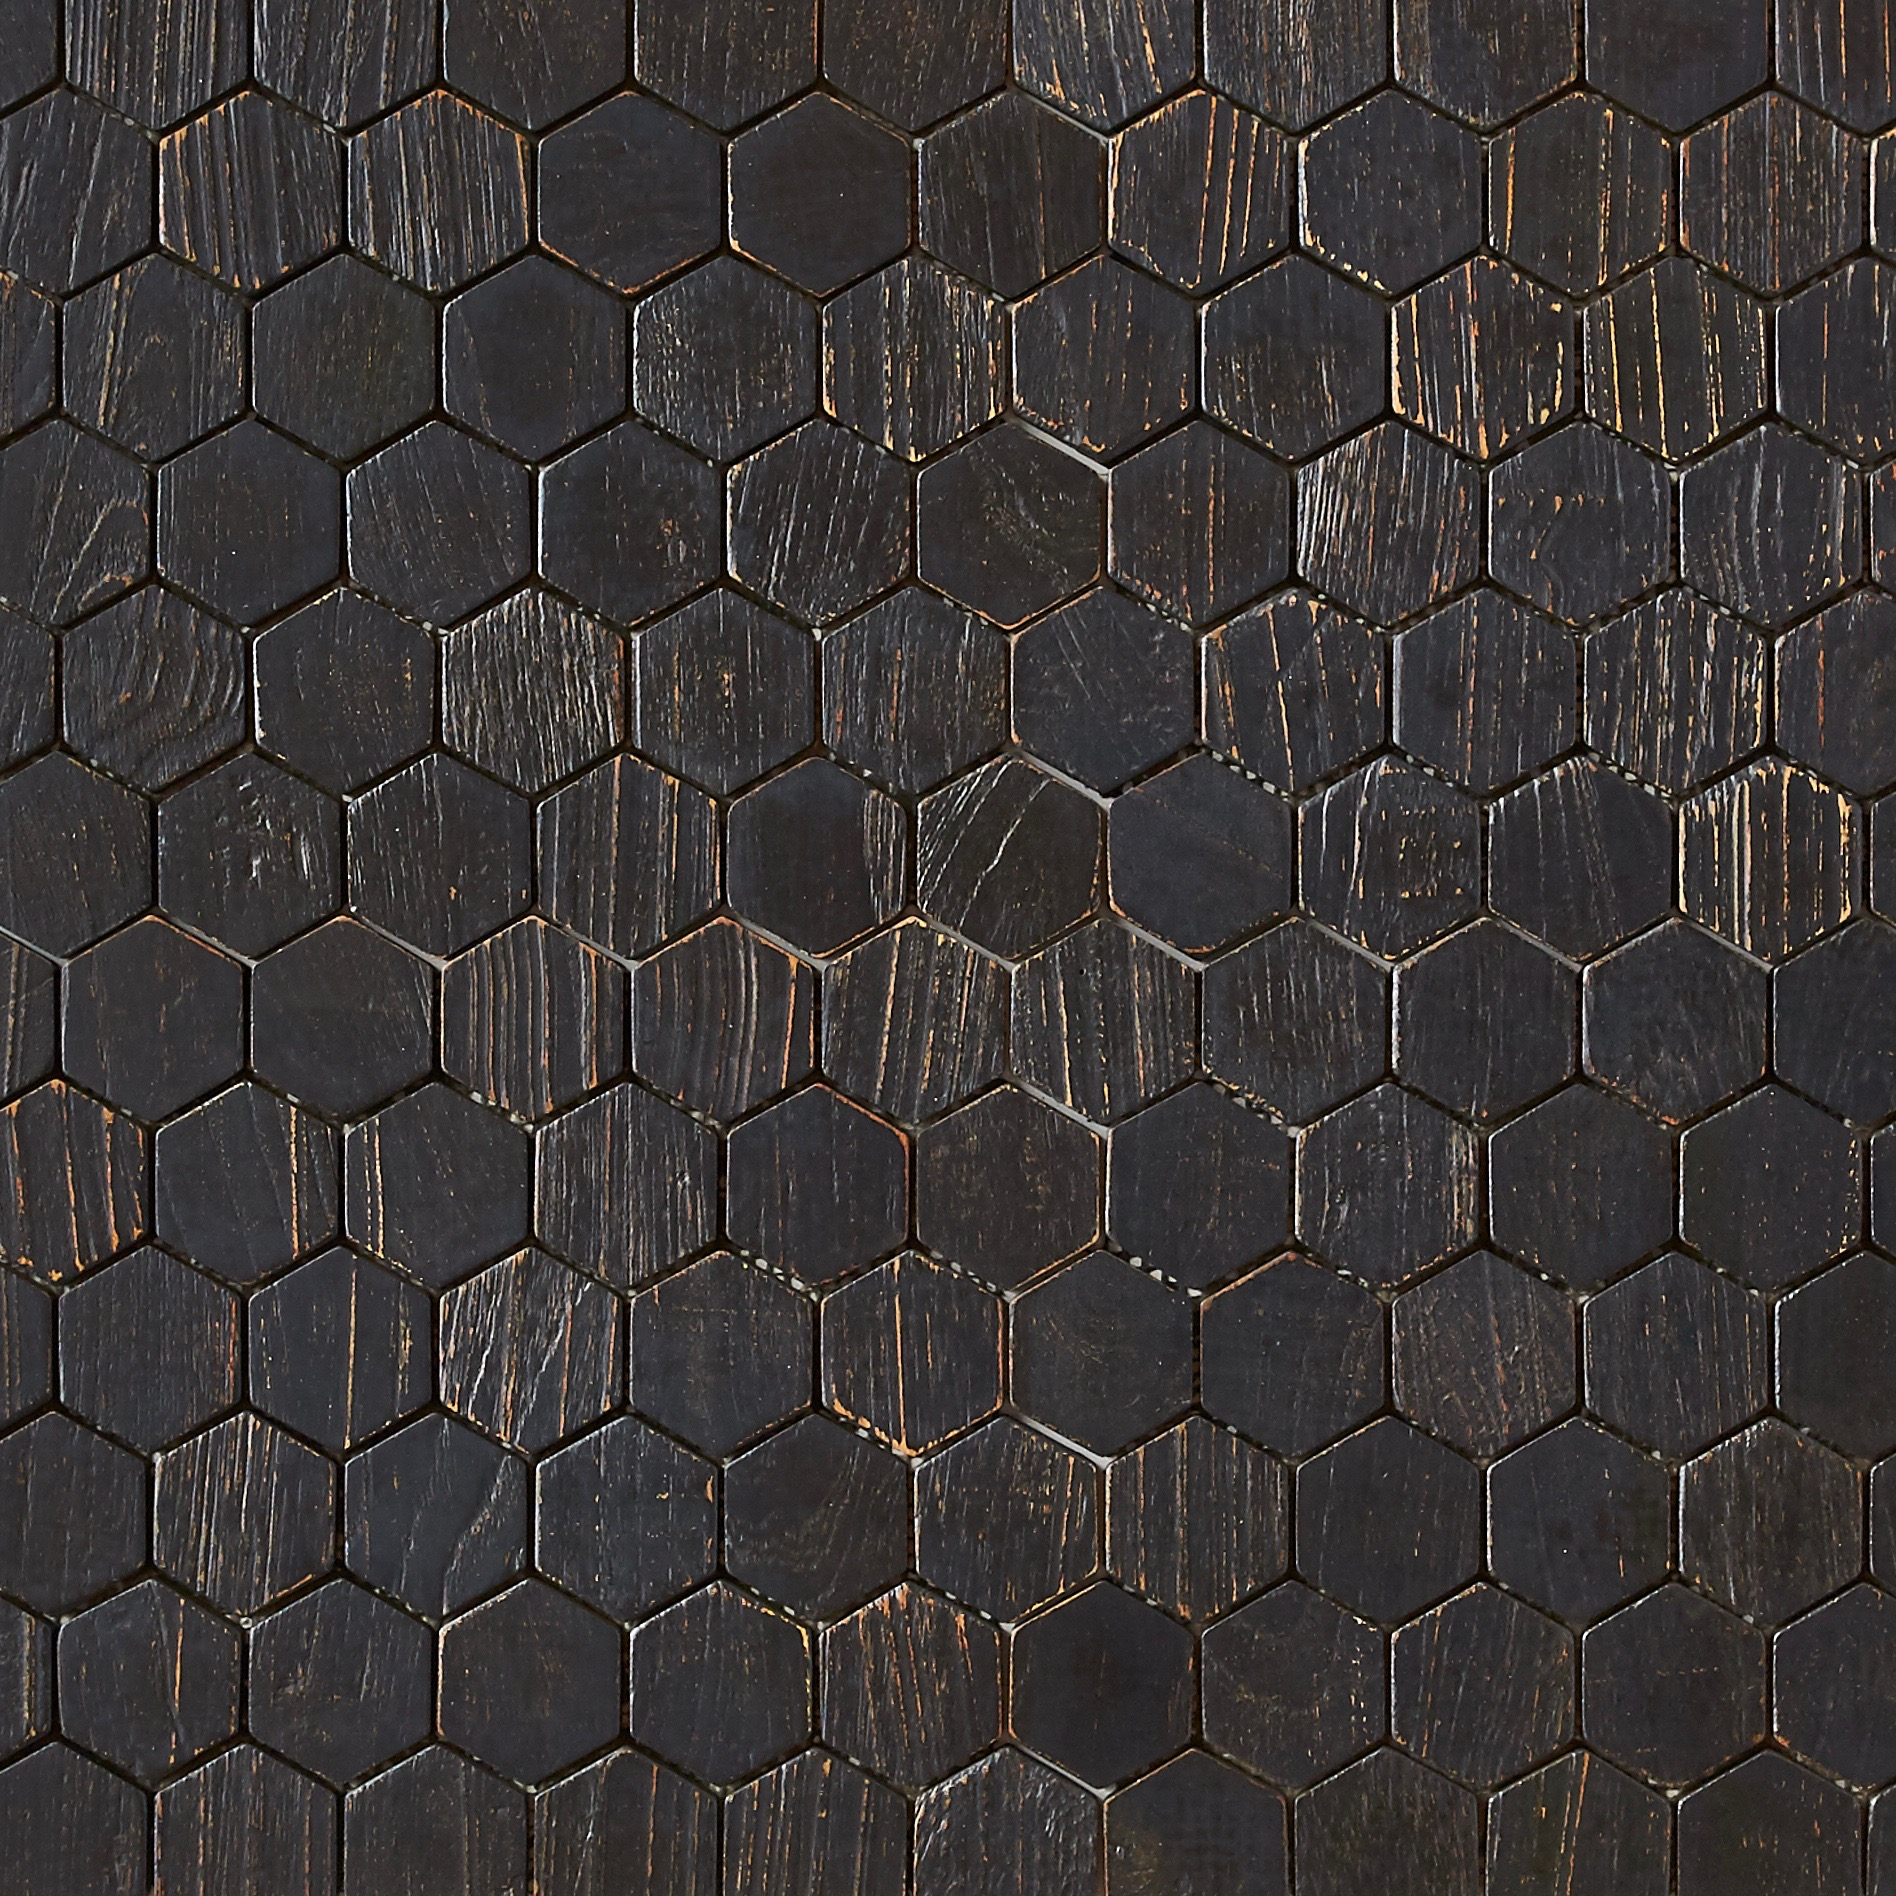 black matte finish 1 - Teak Tile - Honeycomb